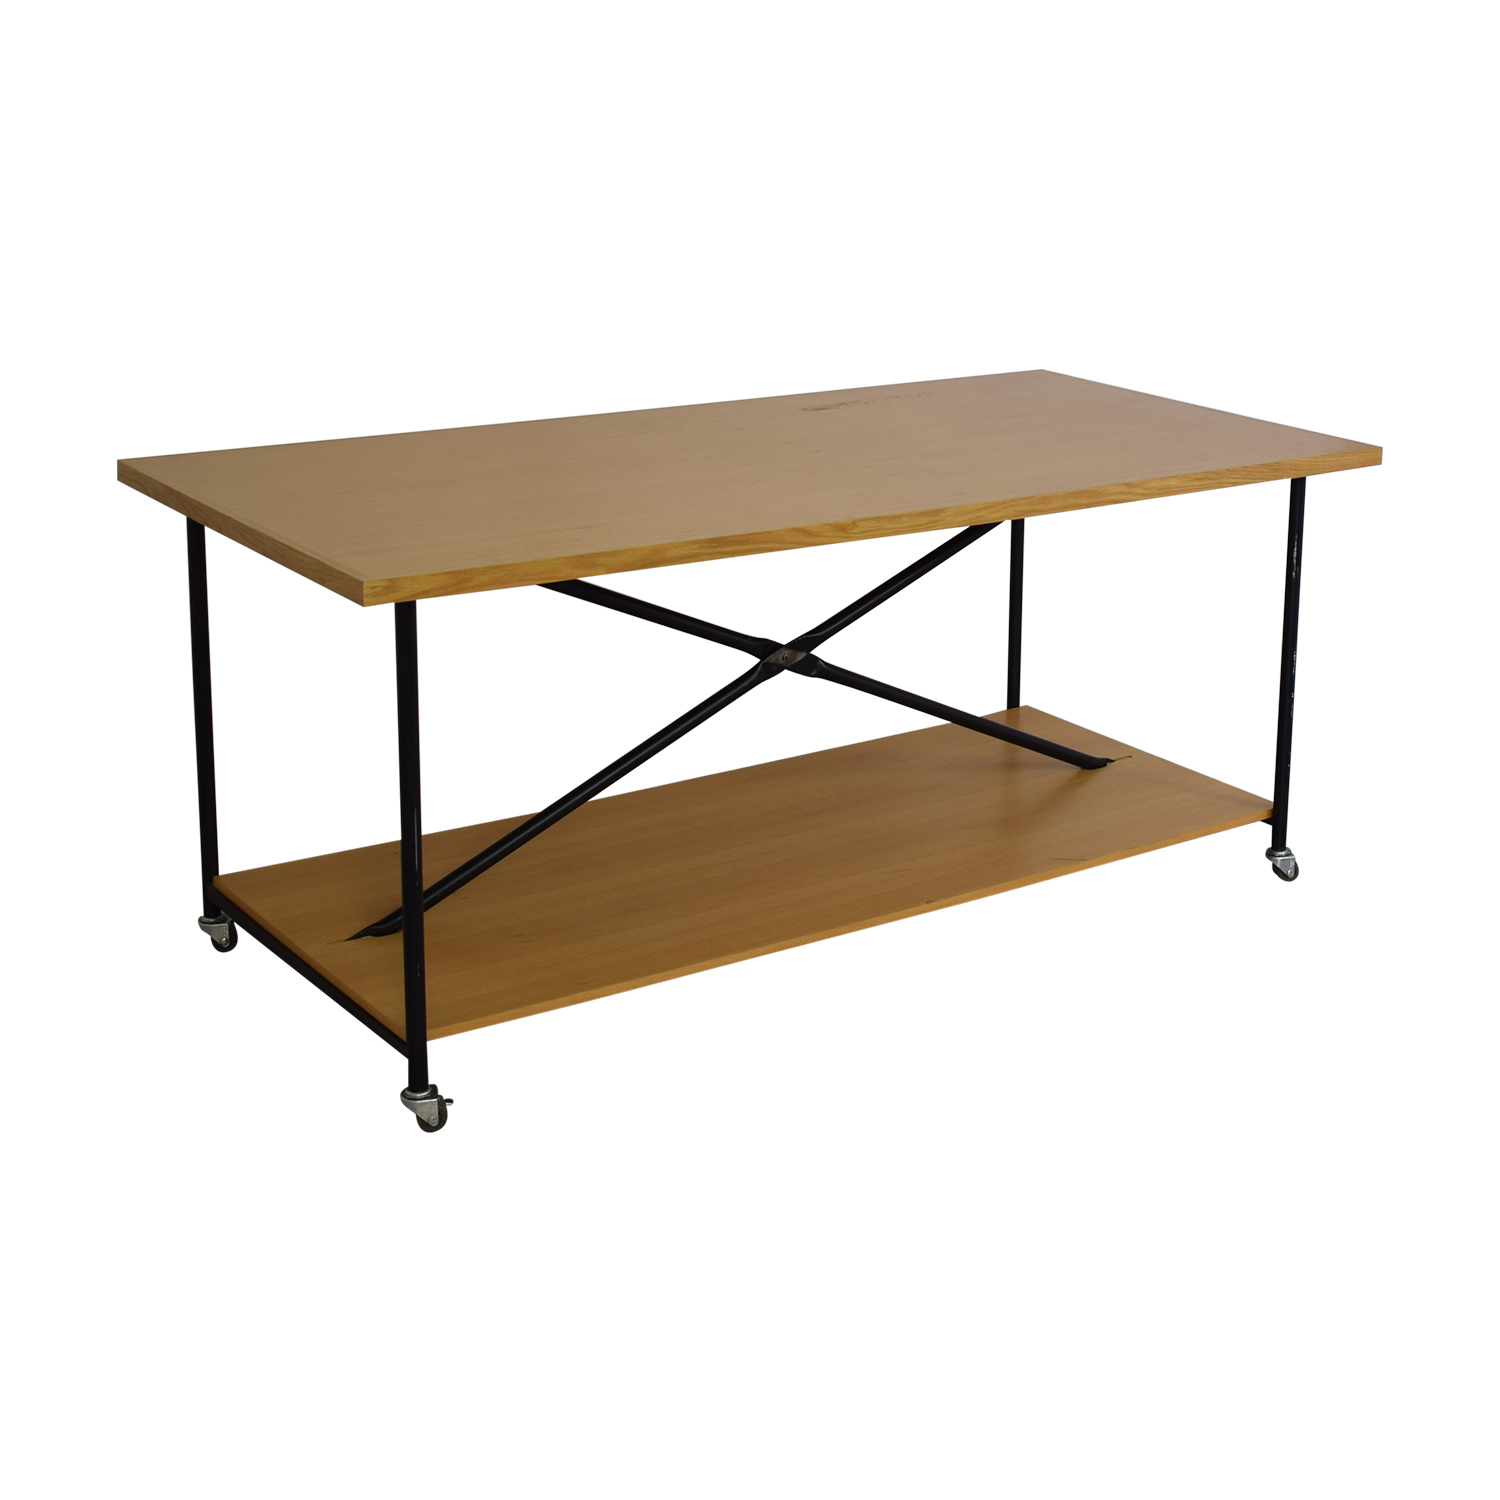 Wooden Work Table with Wheels price